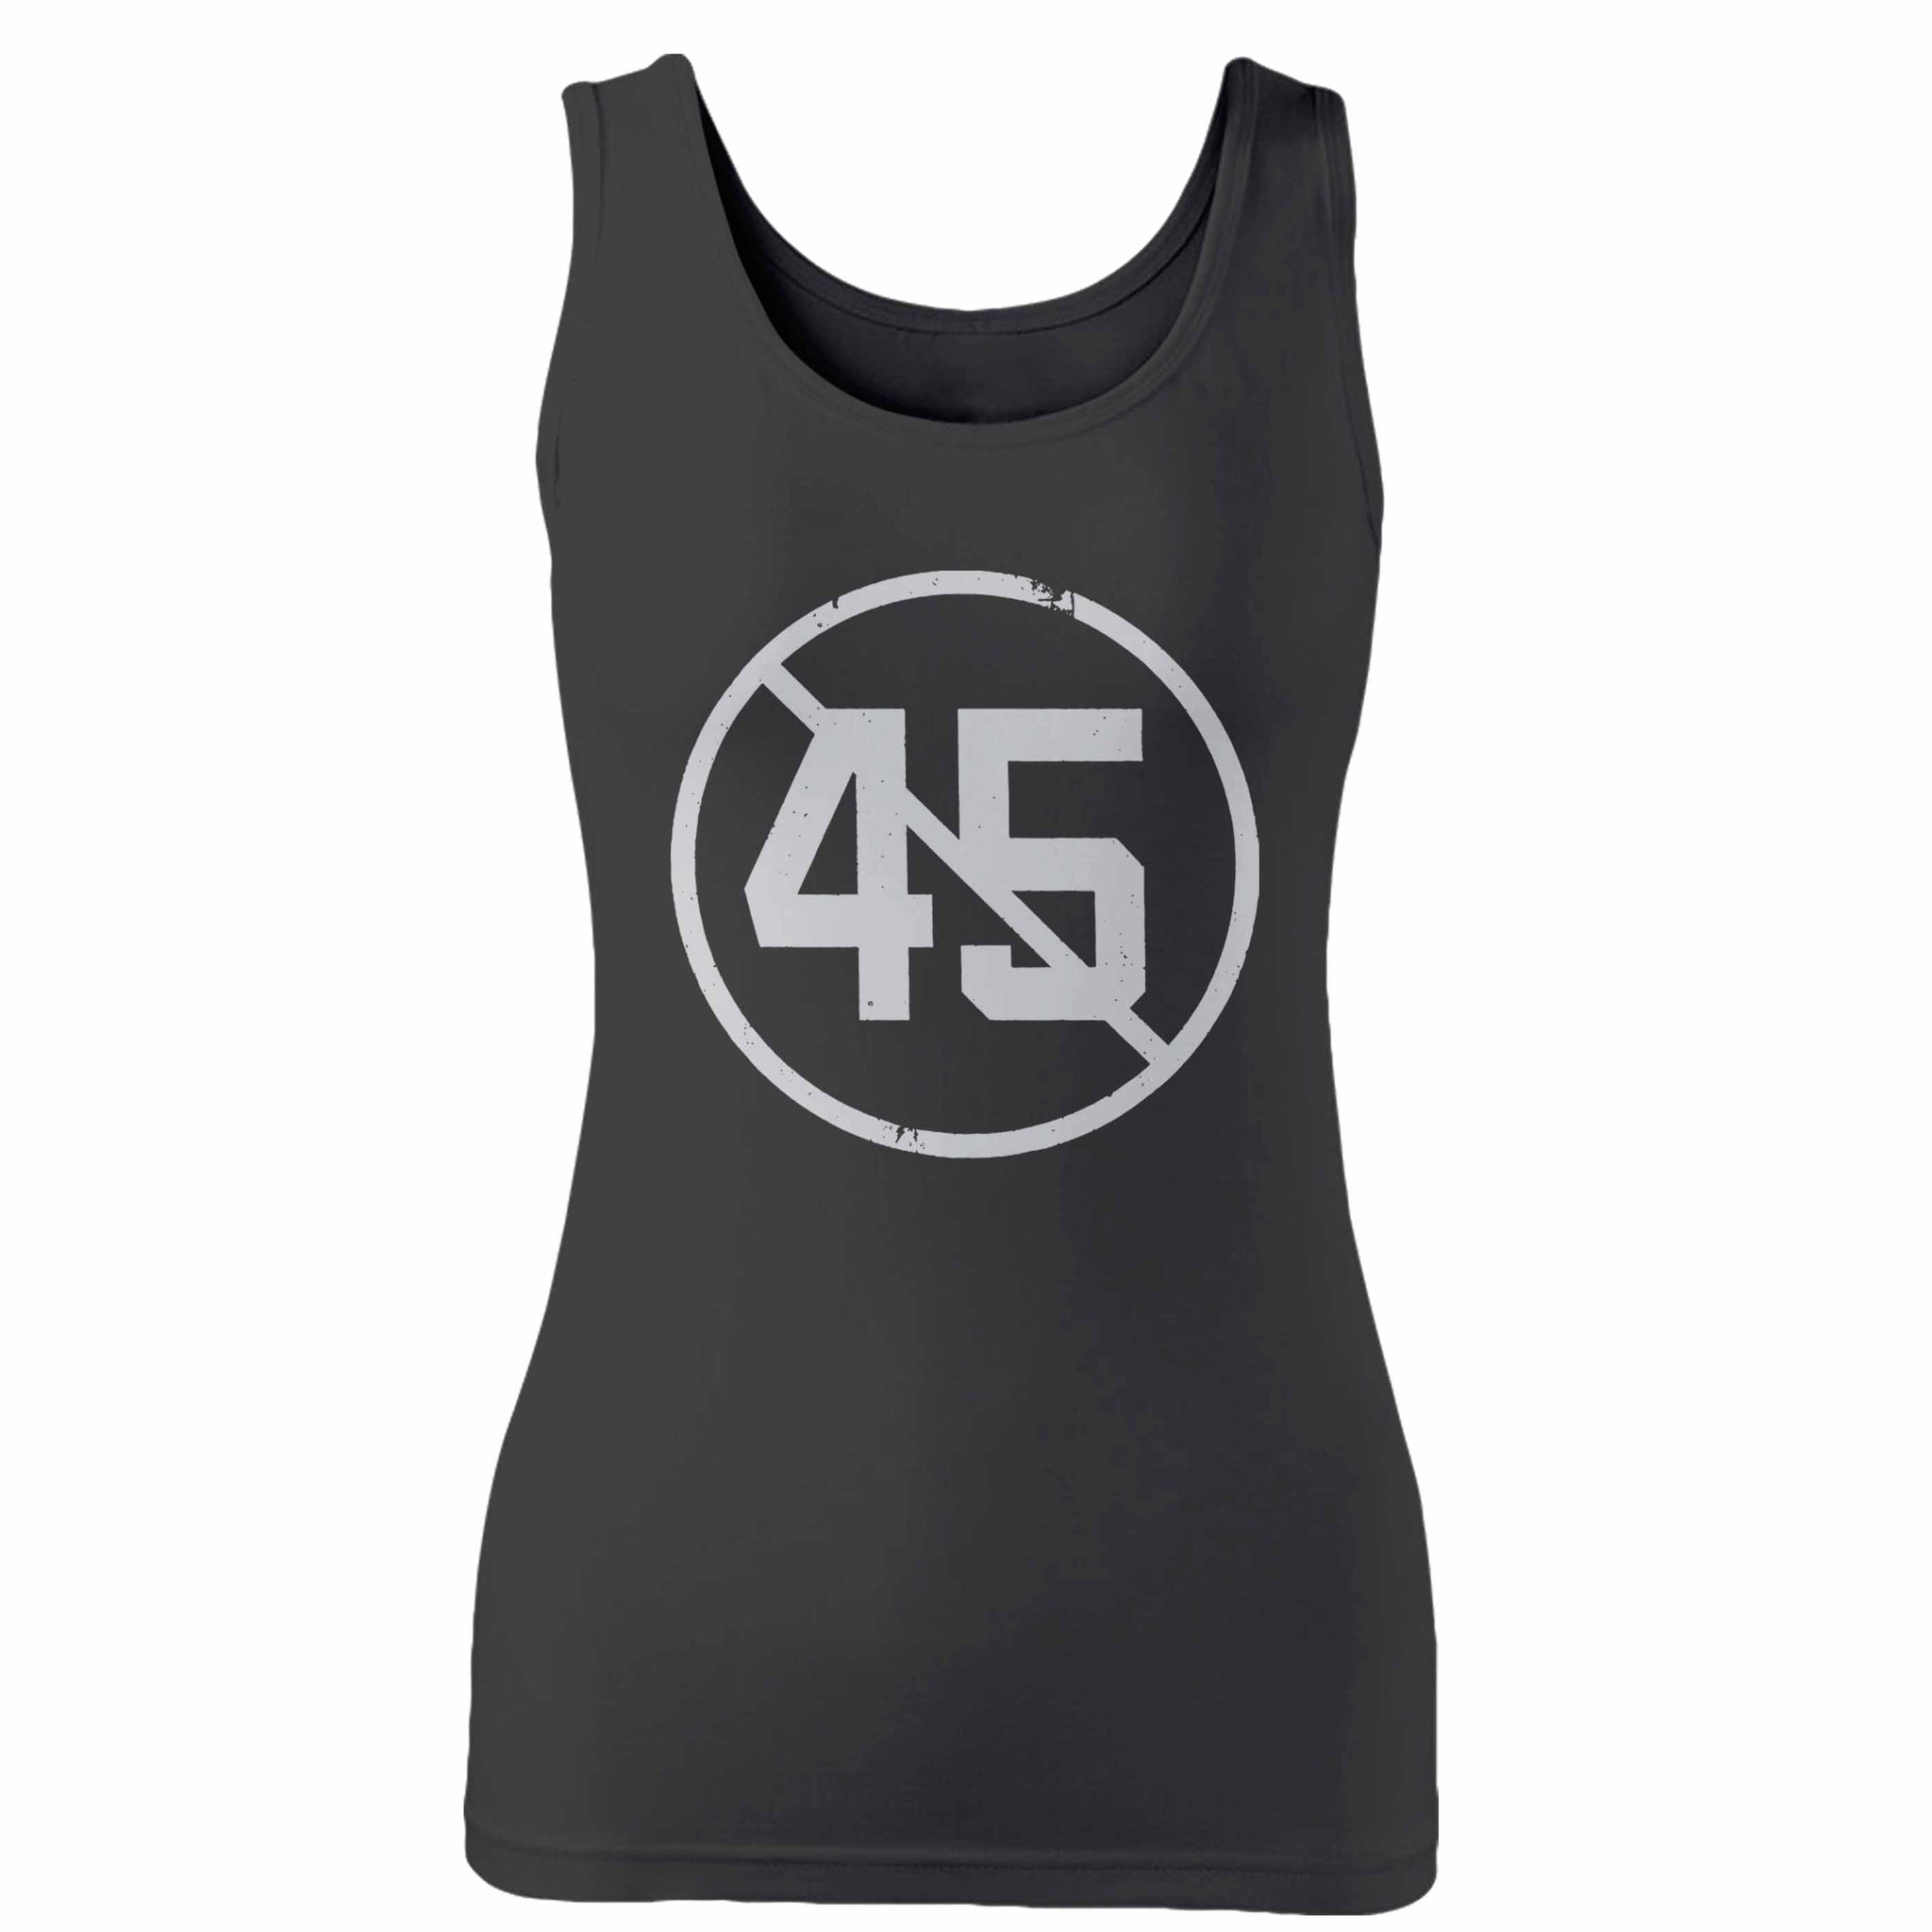 Say No To 45 Woman's Tank Top